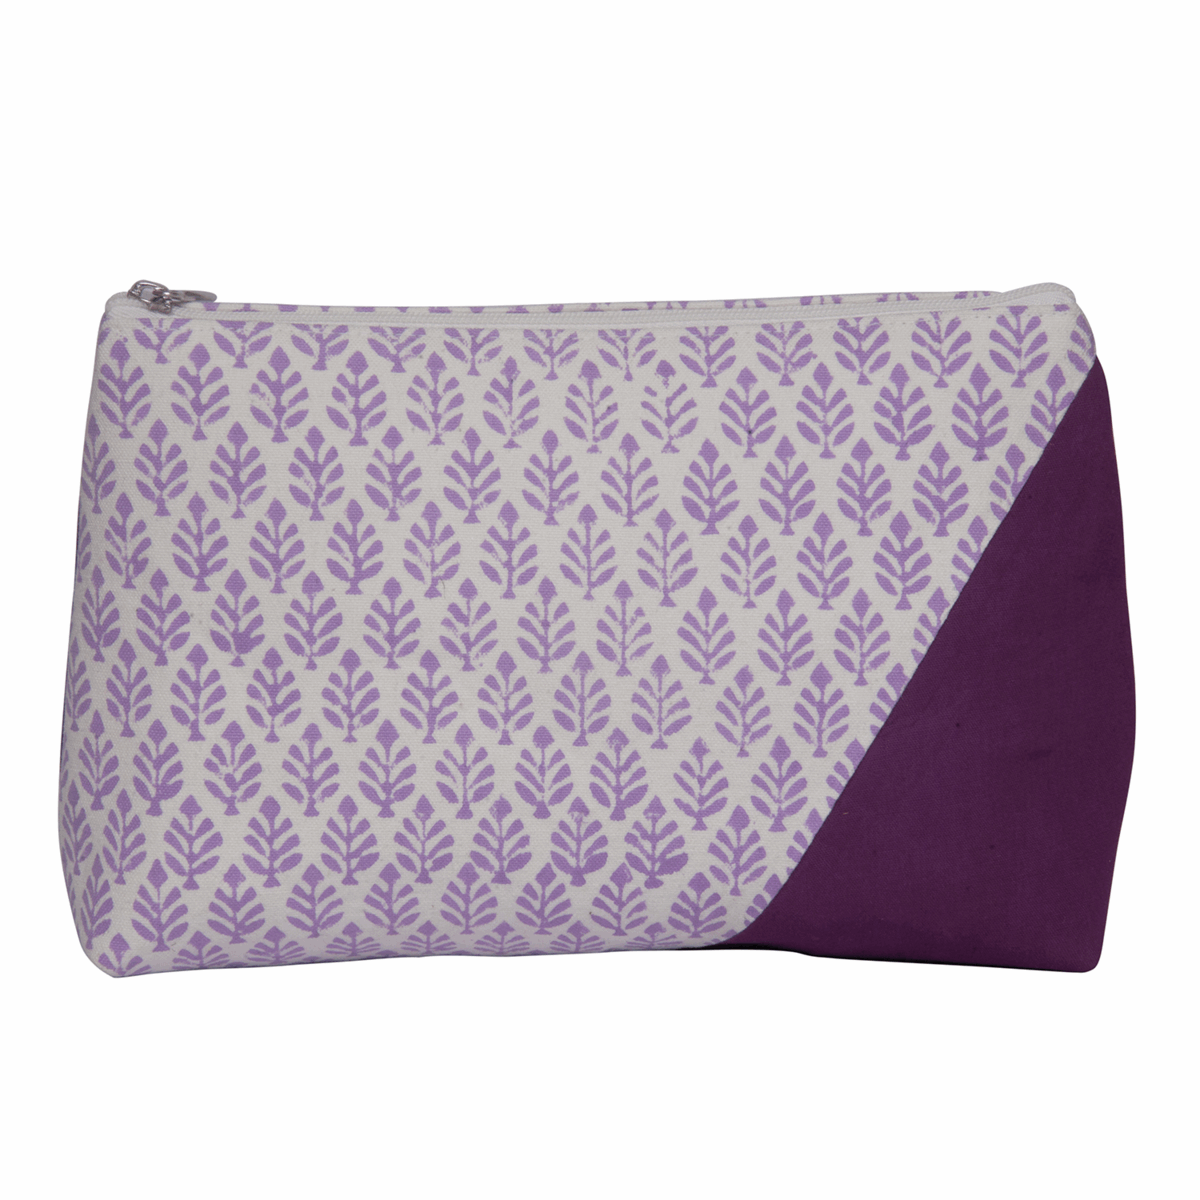 Picture of Reverie Triad: Zippered Pouch: Lavender